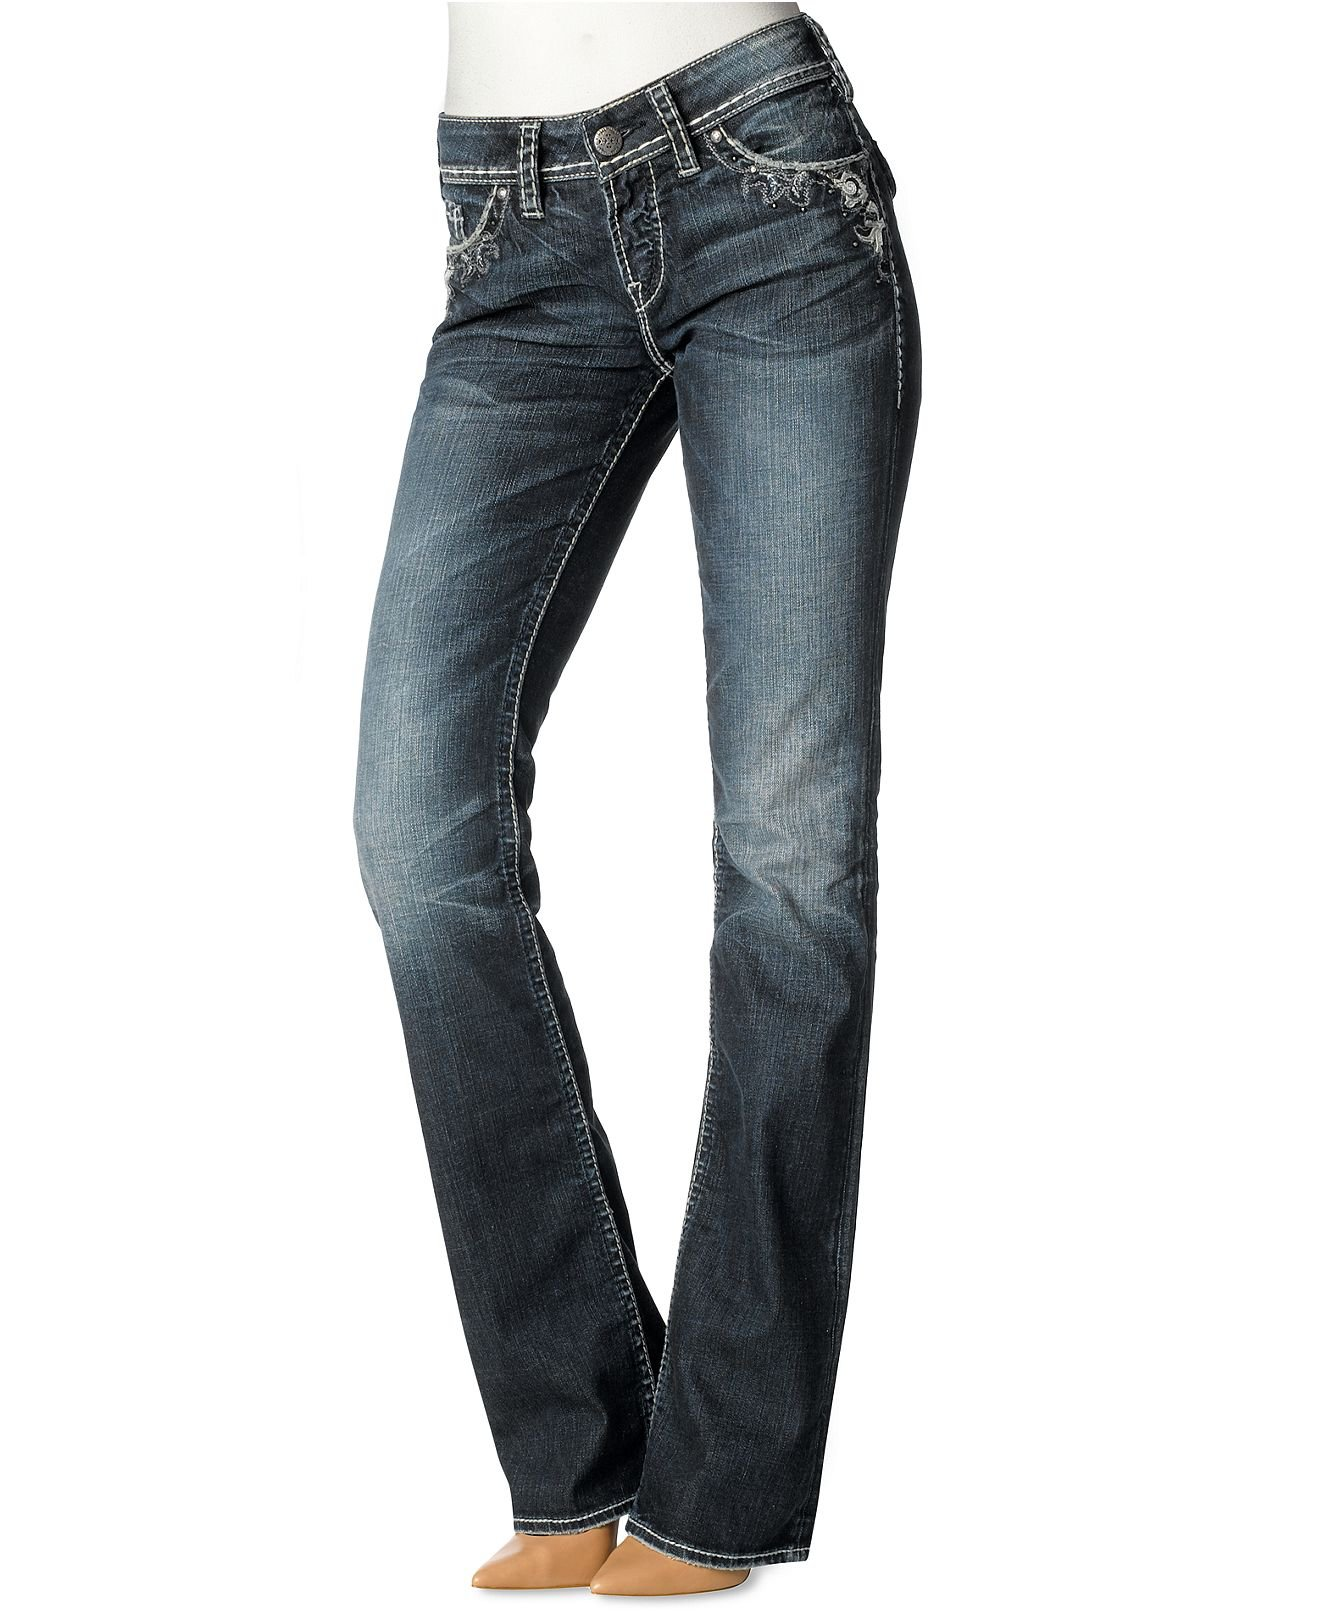 Discounts average $19 off with a Silver Jeans promo code or coupon. 50 Silver Jeans coupons now on RetailMeNot.